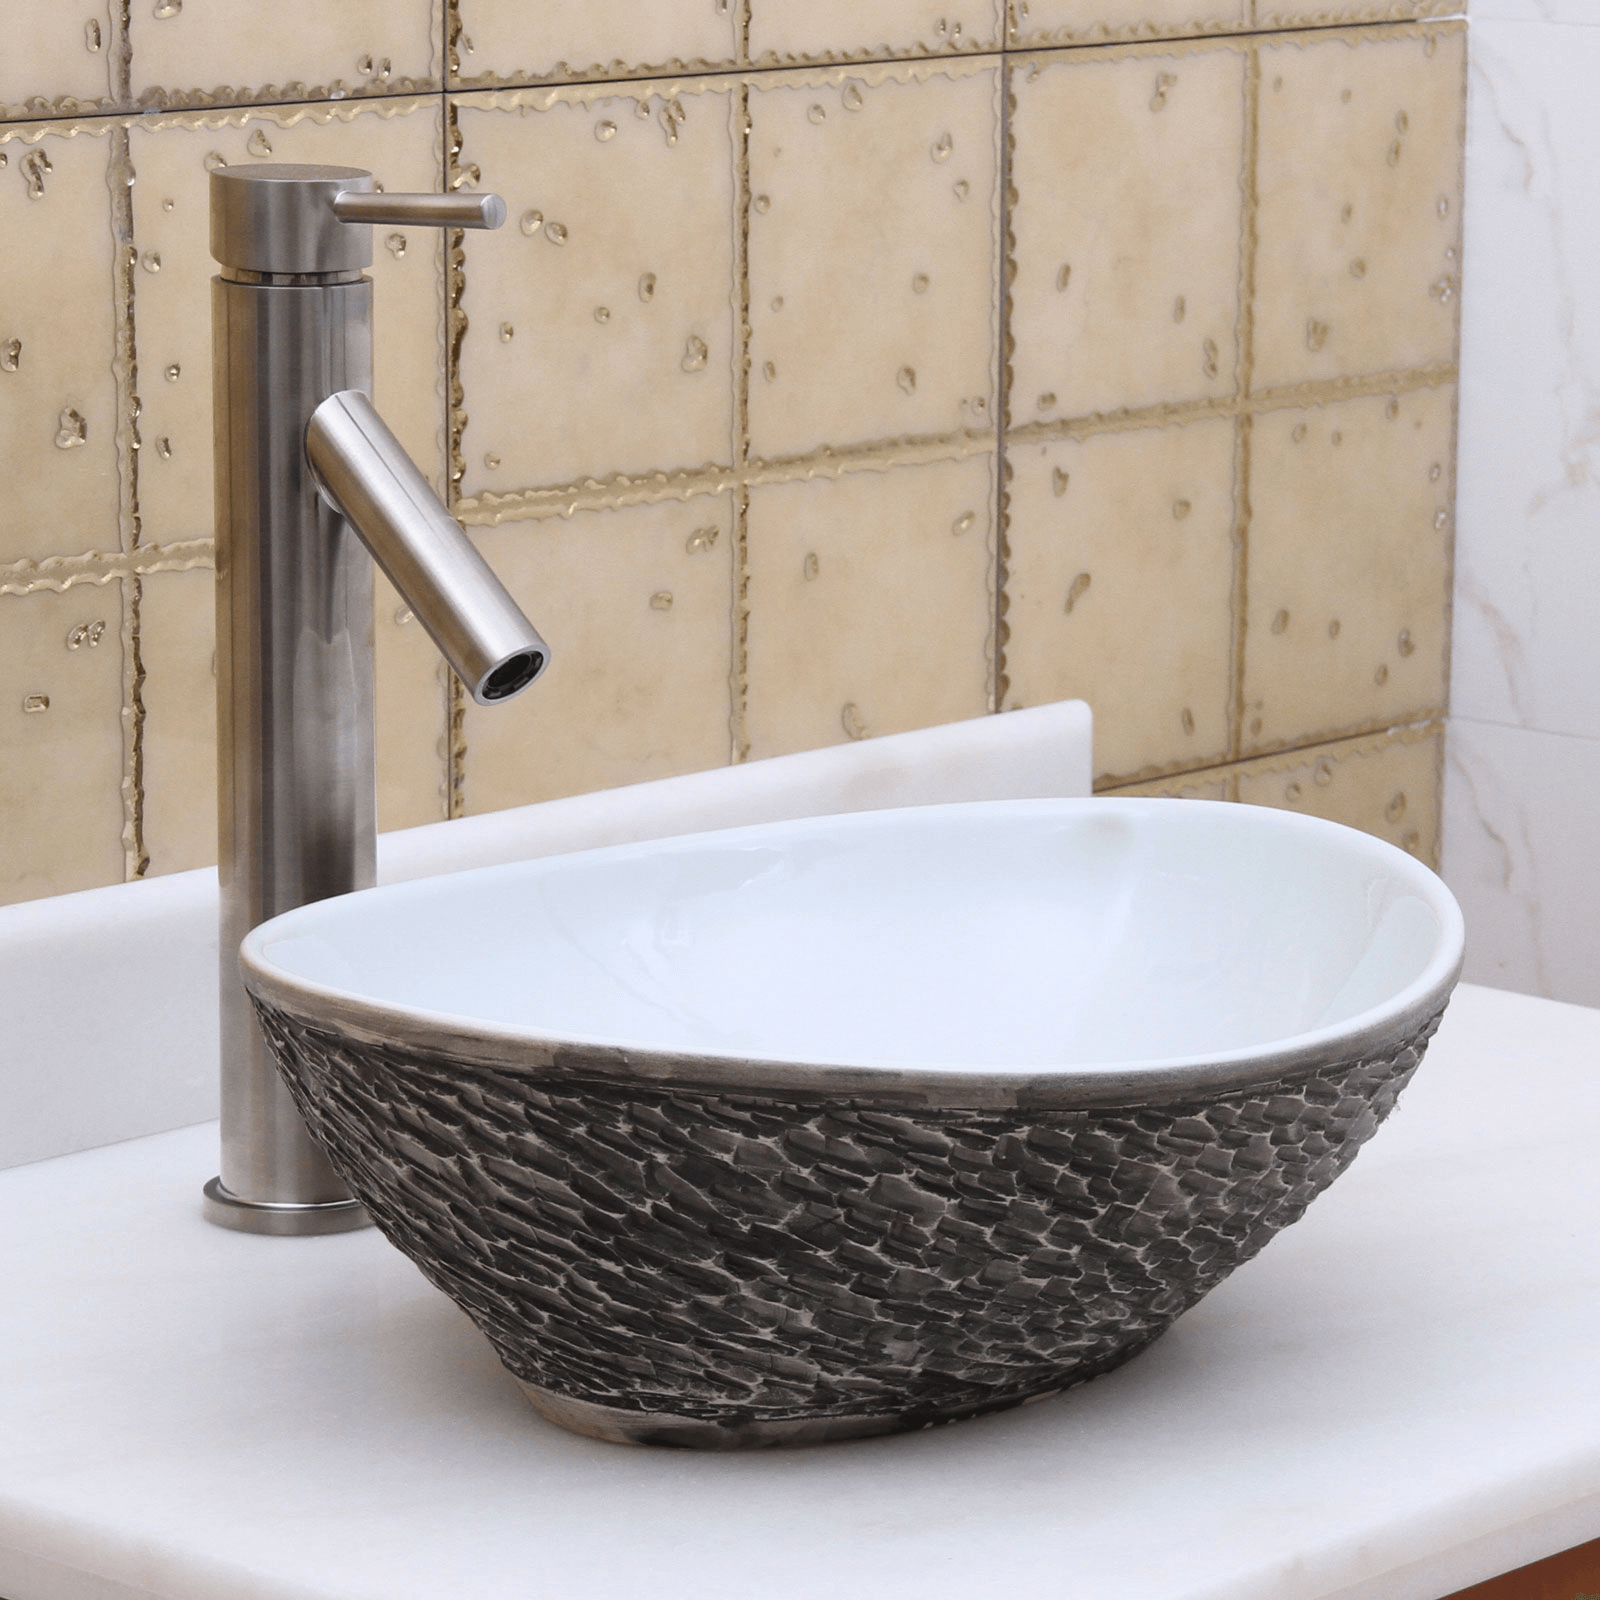 Porcelain Bathroom Sink Materials Pros And Cons Accesorios